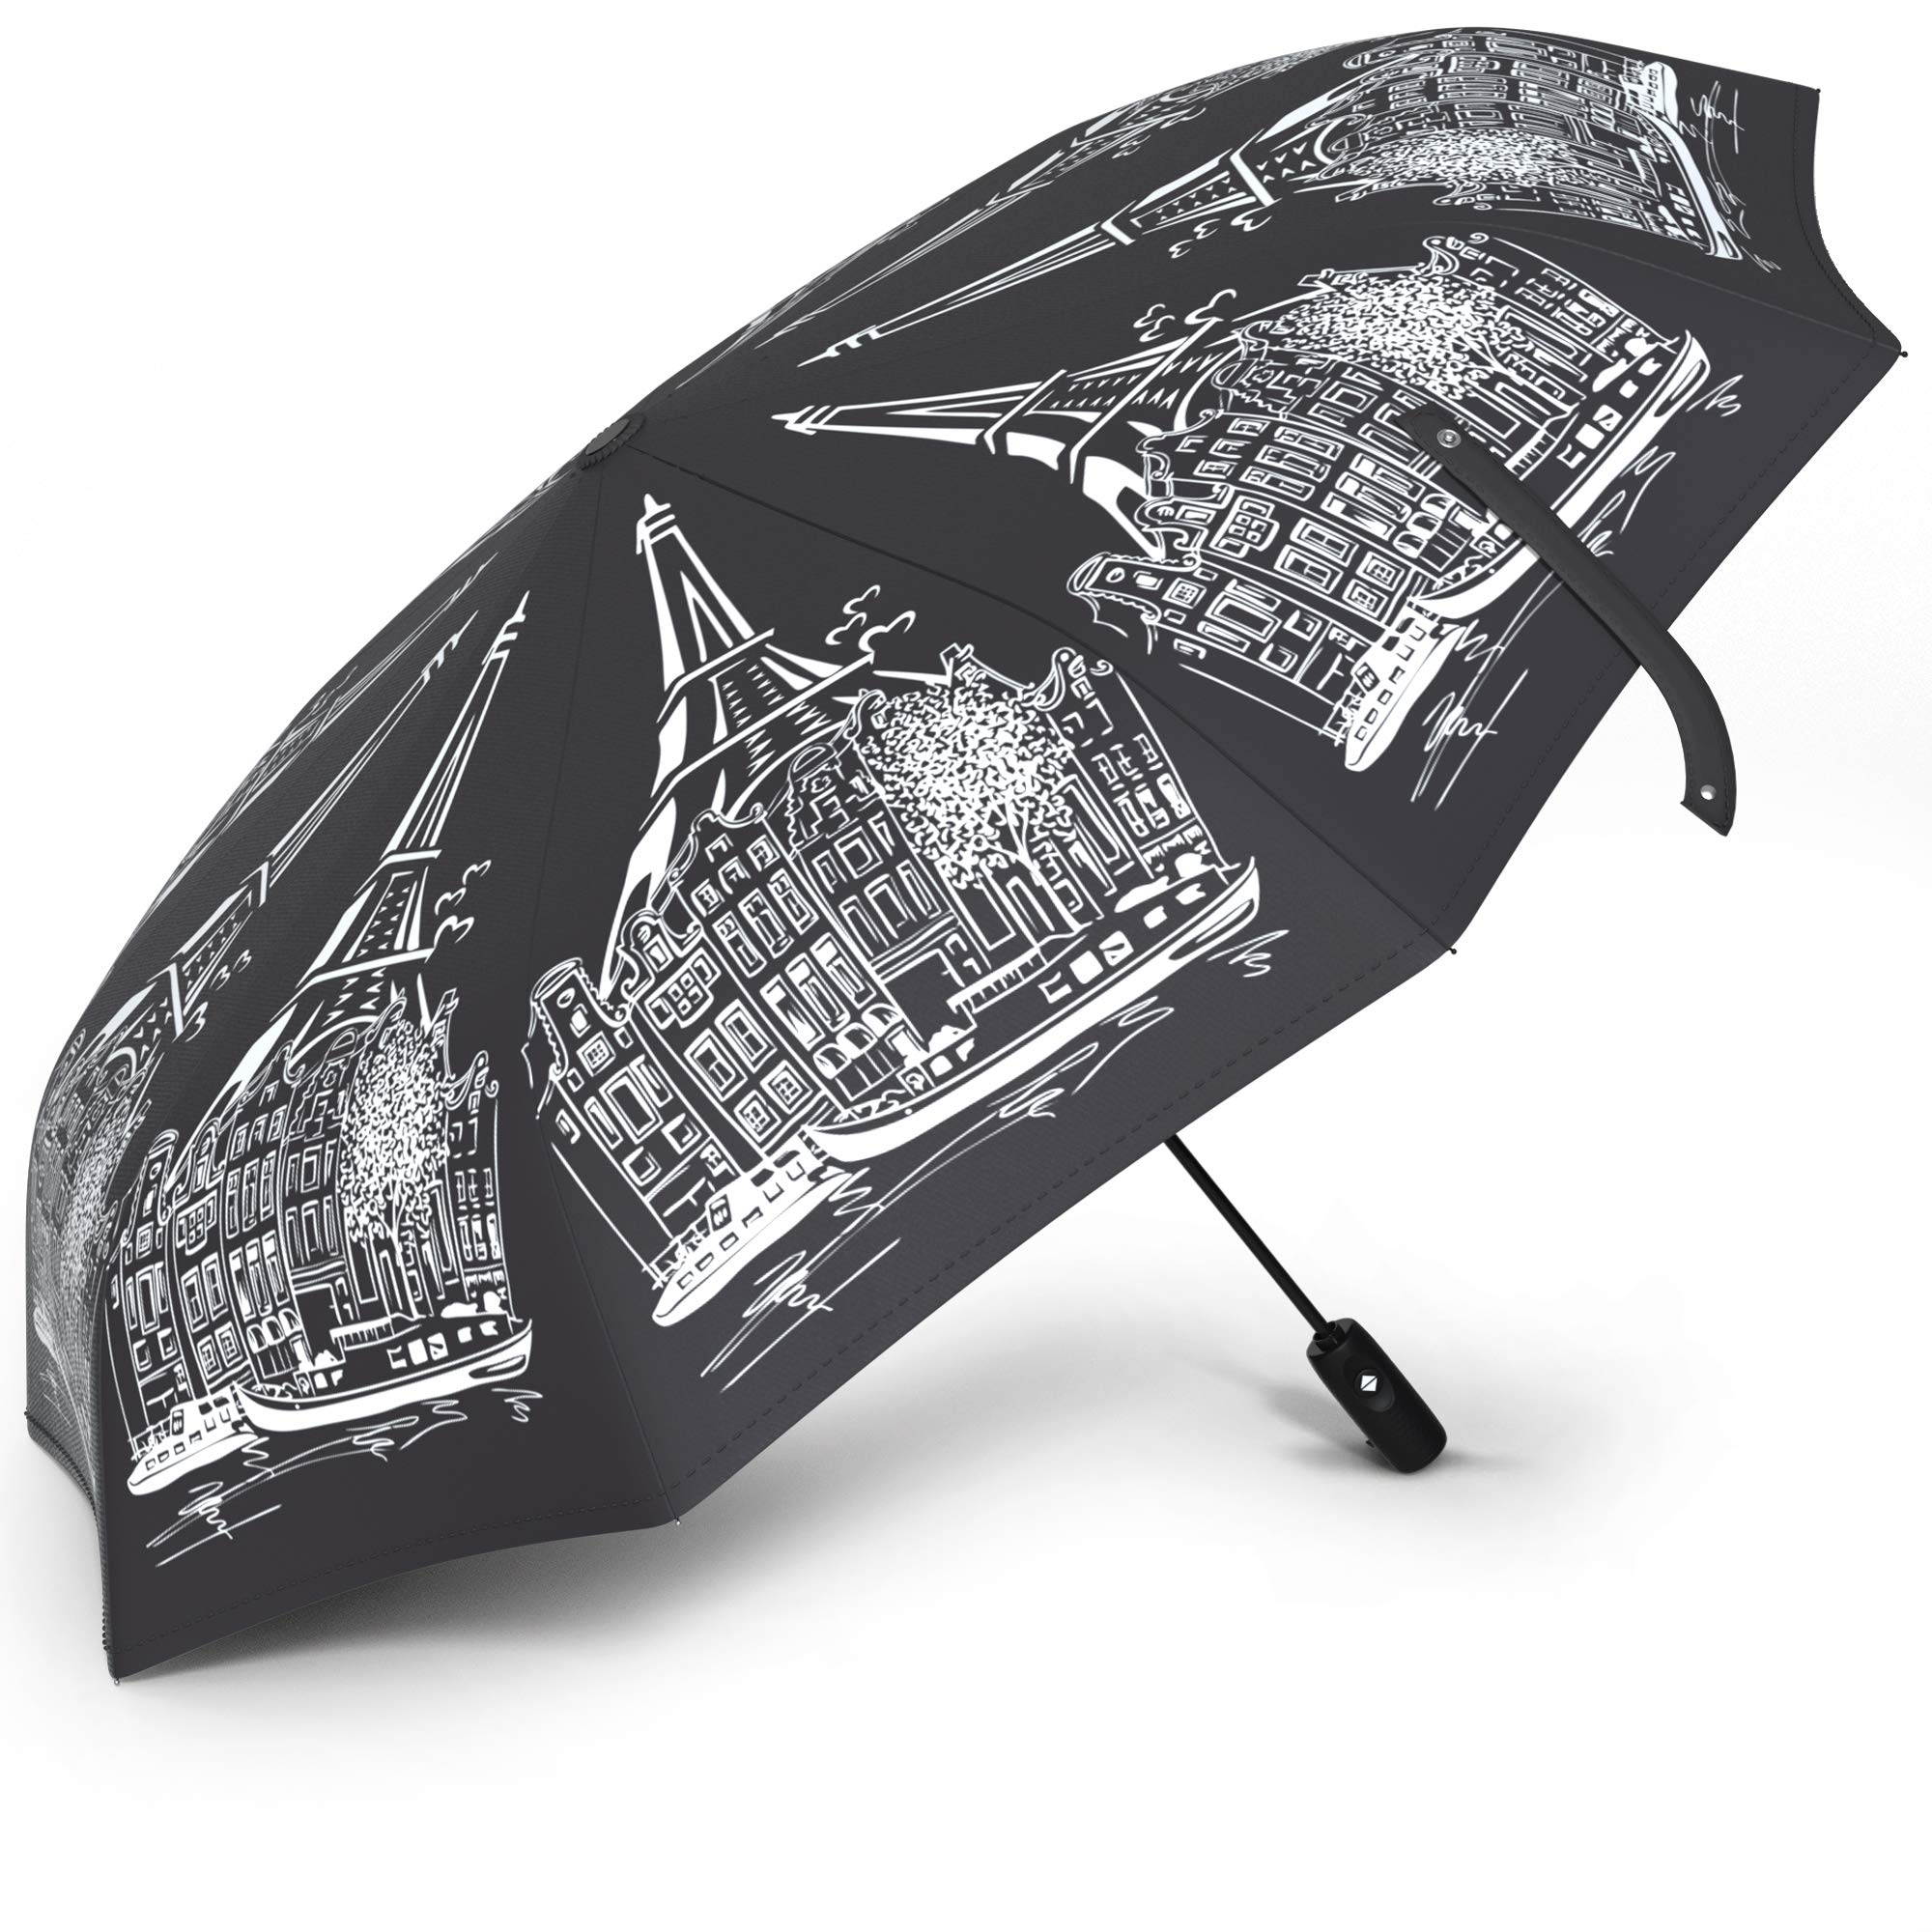 Compact Umbrella for travel